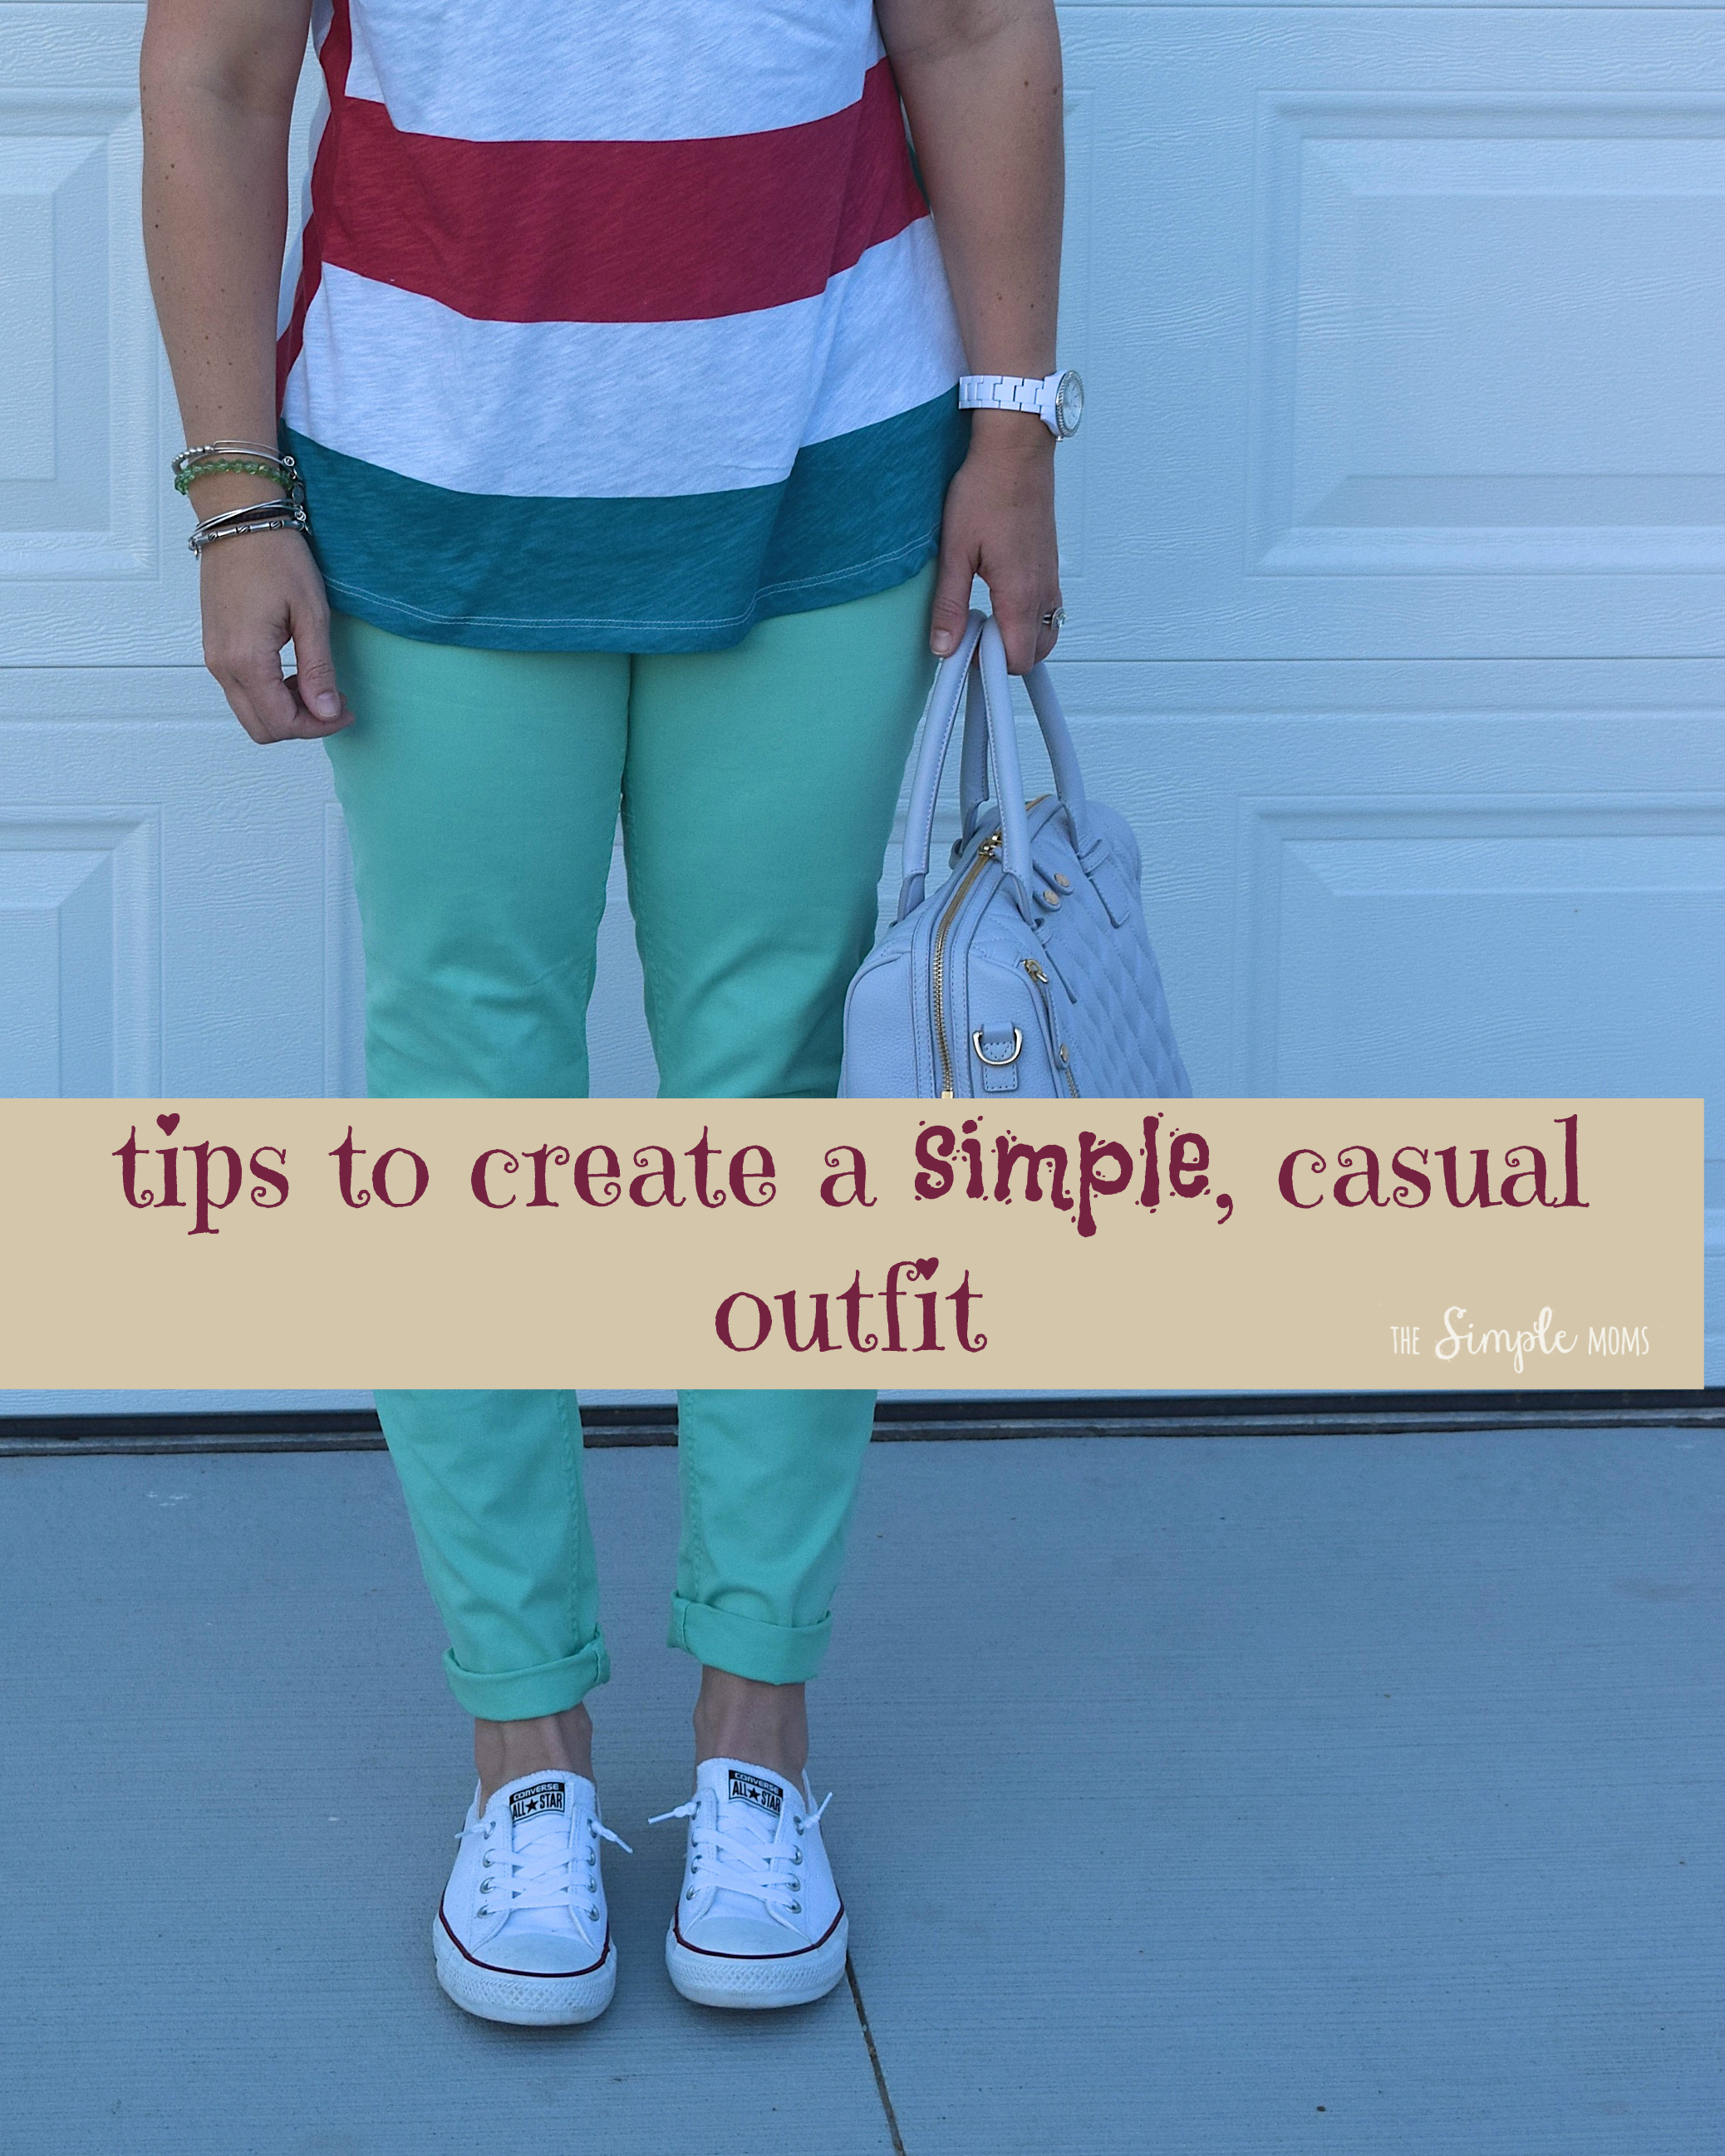 Tips to crate a simple, casual outfit